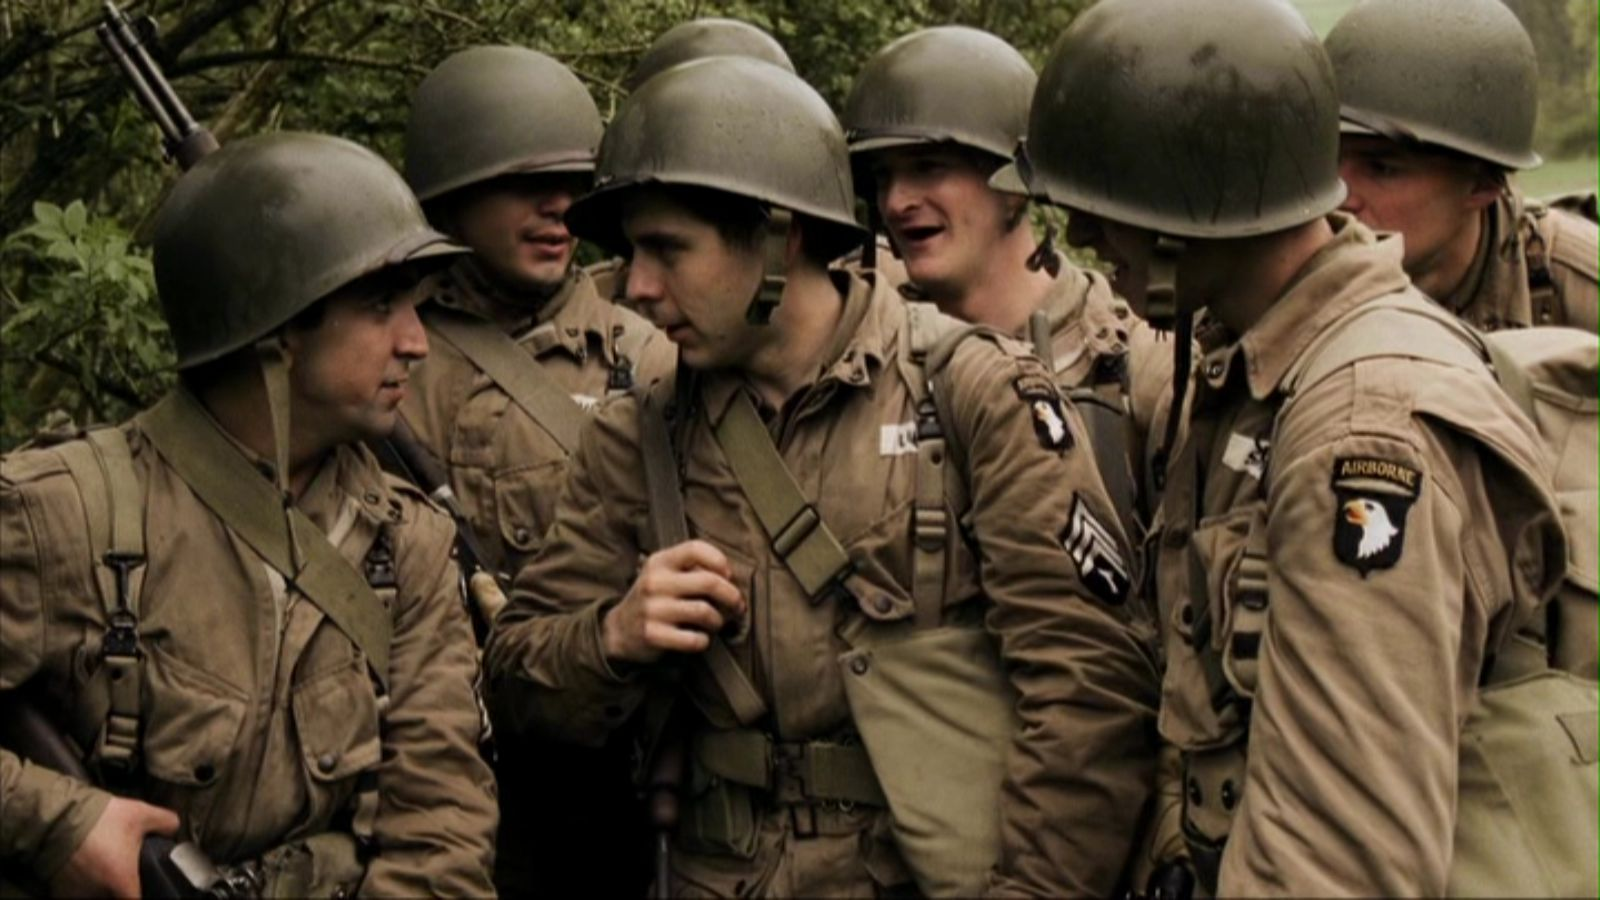 Band Of Brothers Why We Fight Quotes: Band Of Brothers Amazing Costumes For The Movie